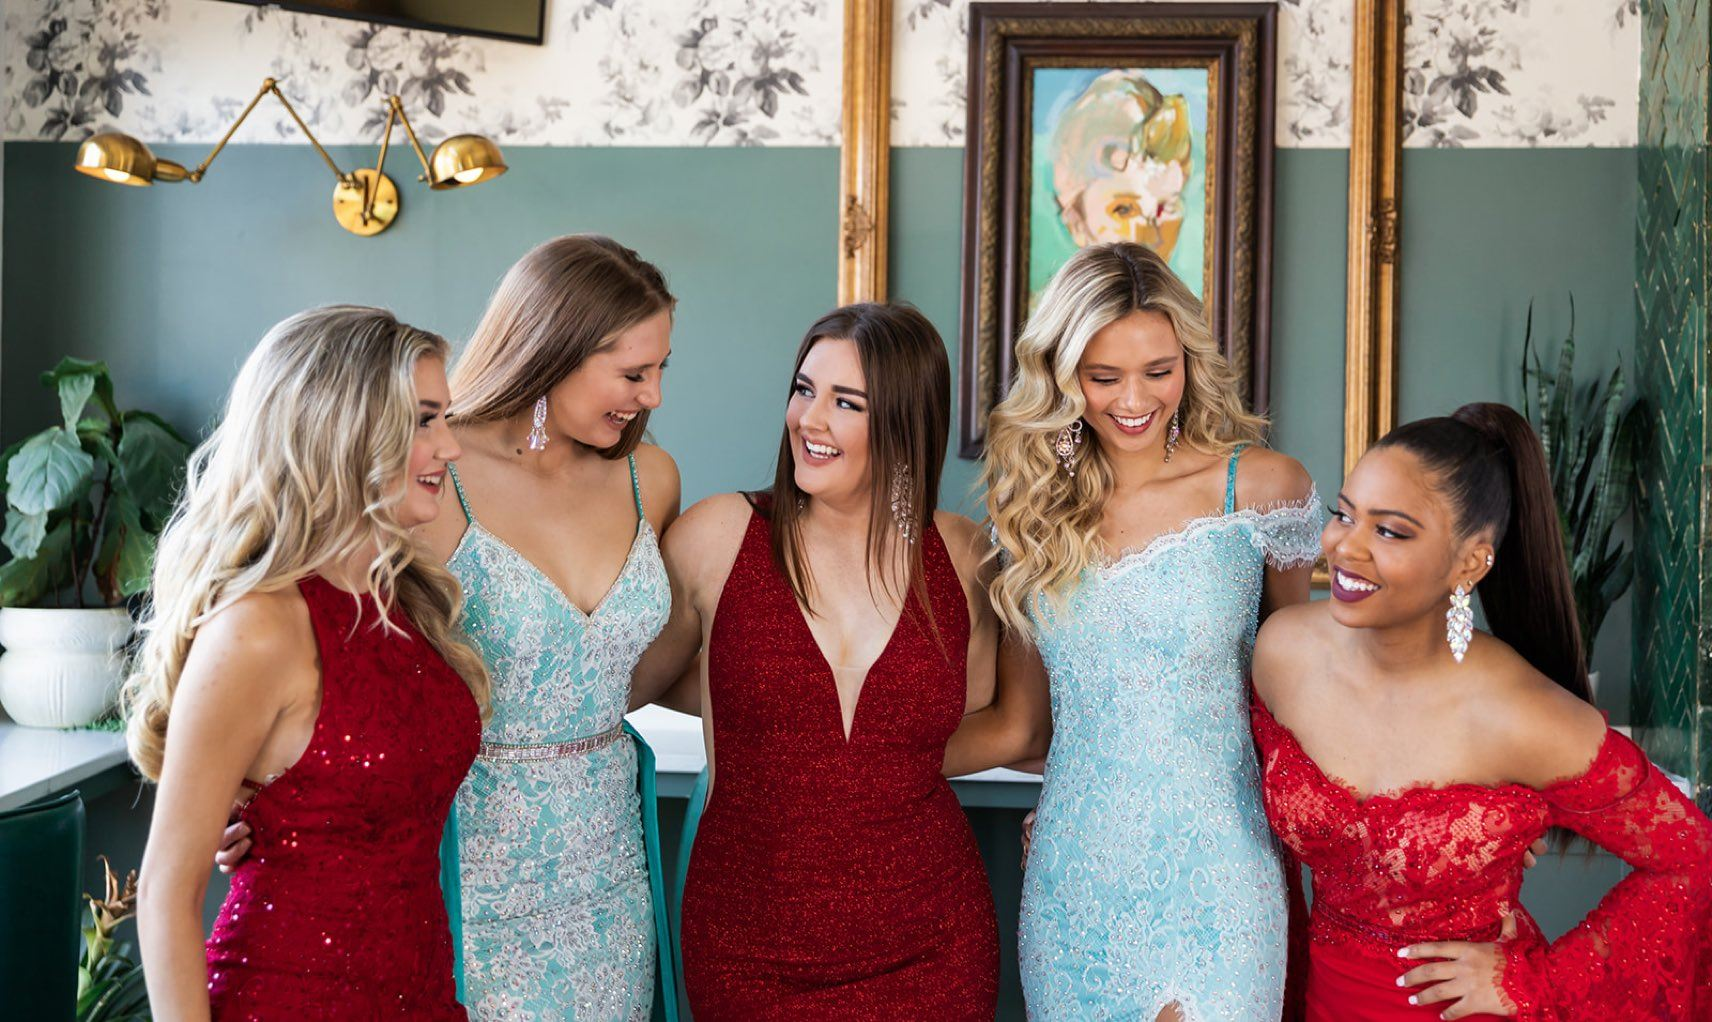 Pageant and prom dresses at Glitz Nashville